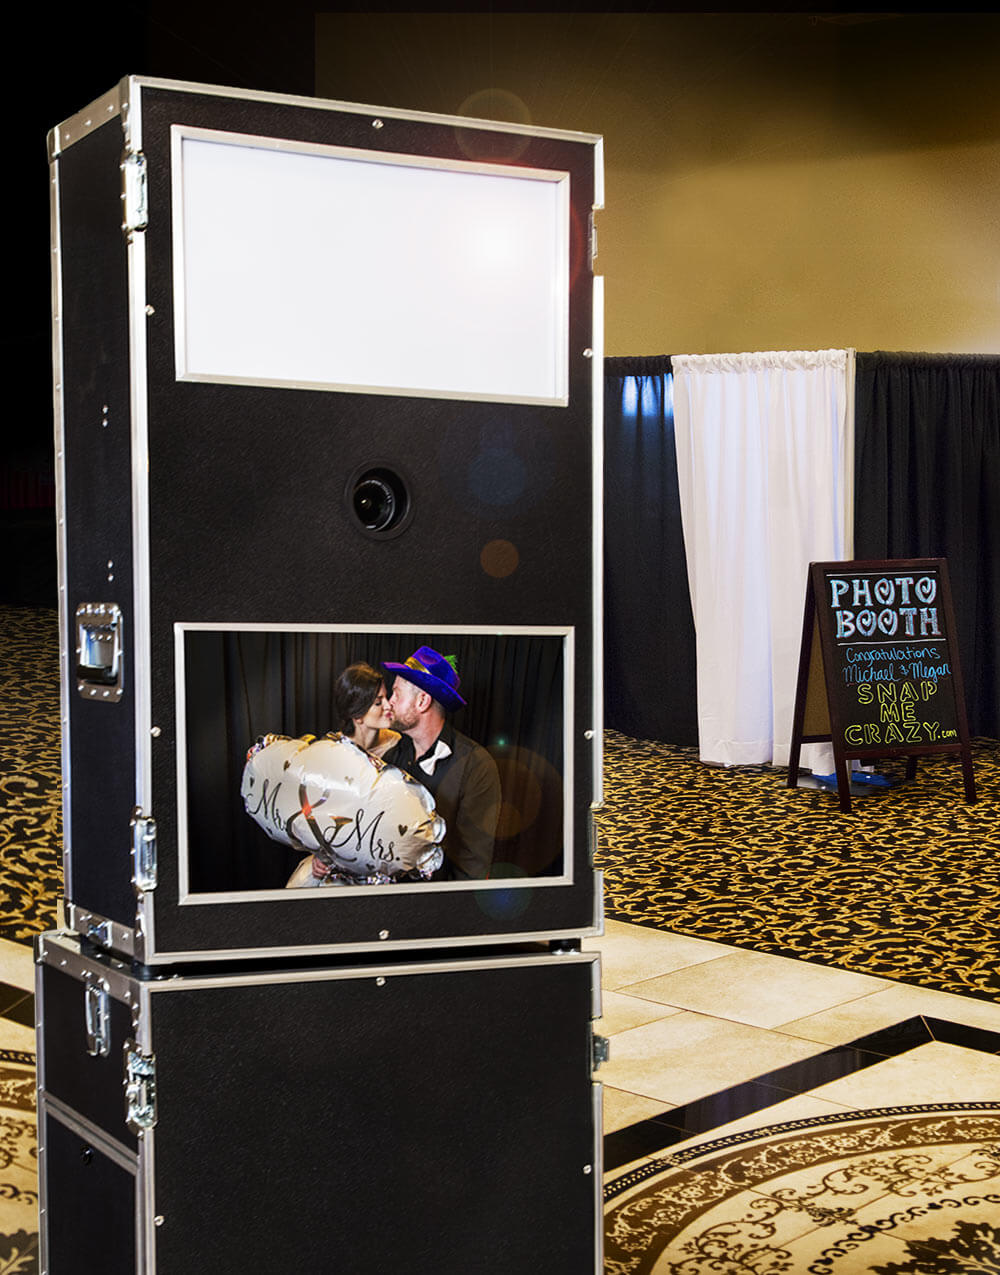 Oklahoma City snap me crazy photo booth rental